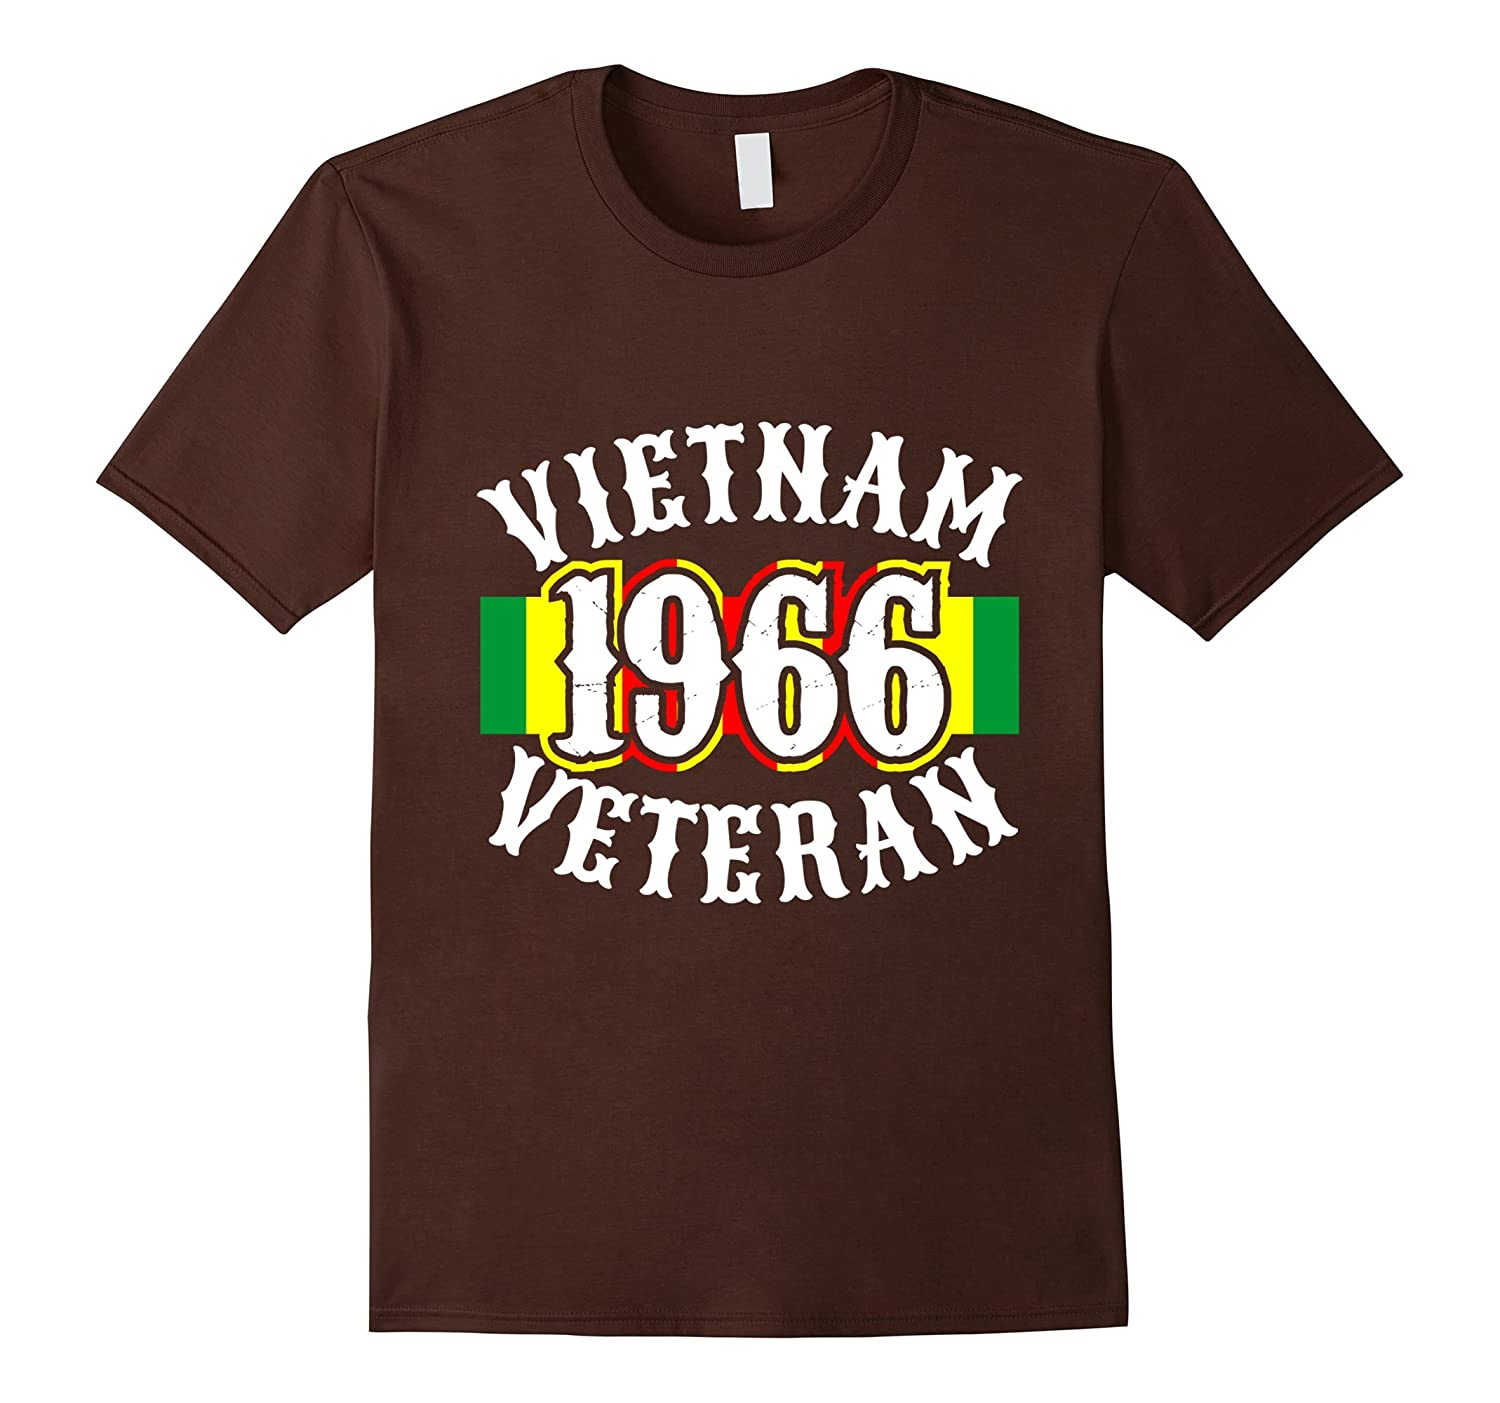 Mens Vietnam 1966 Veterans Tshirt for War Vets and Heroes-FL